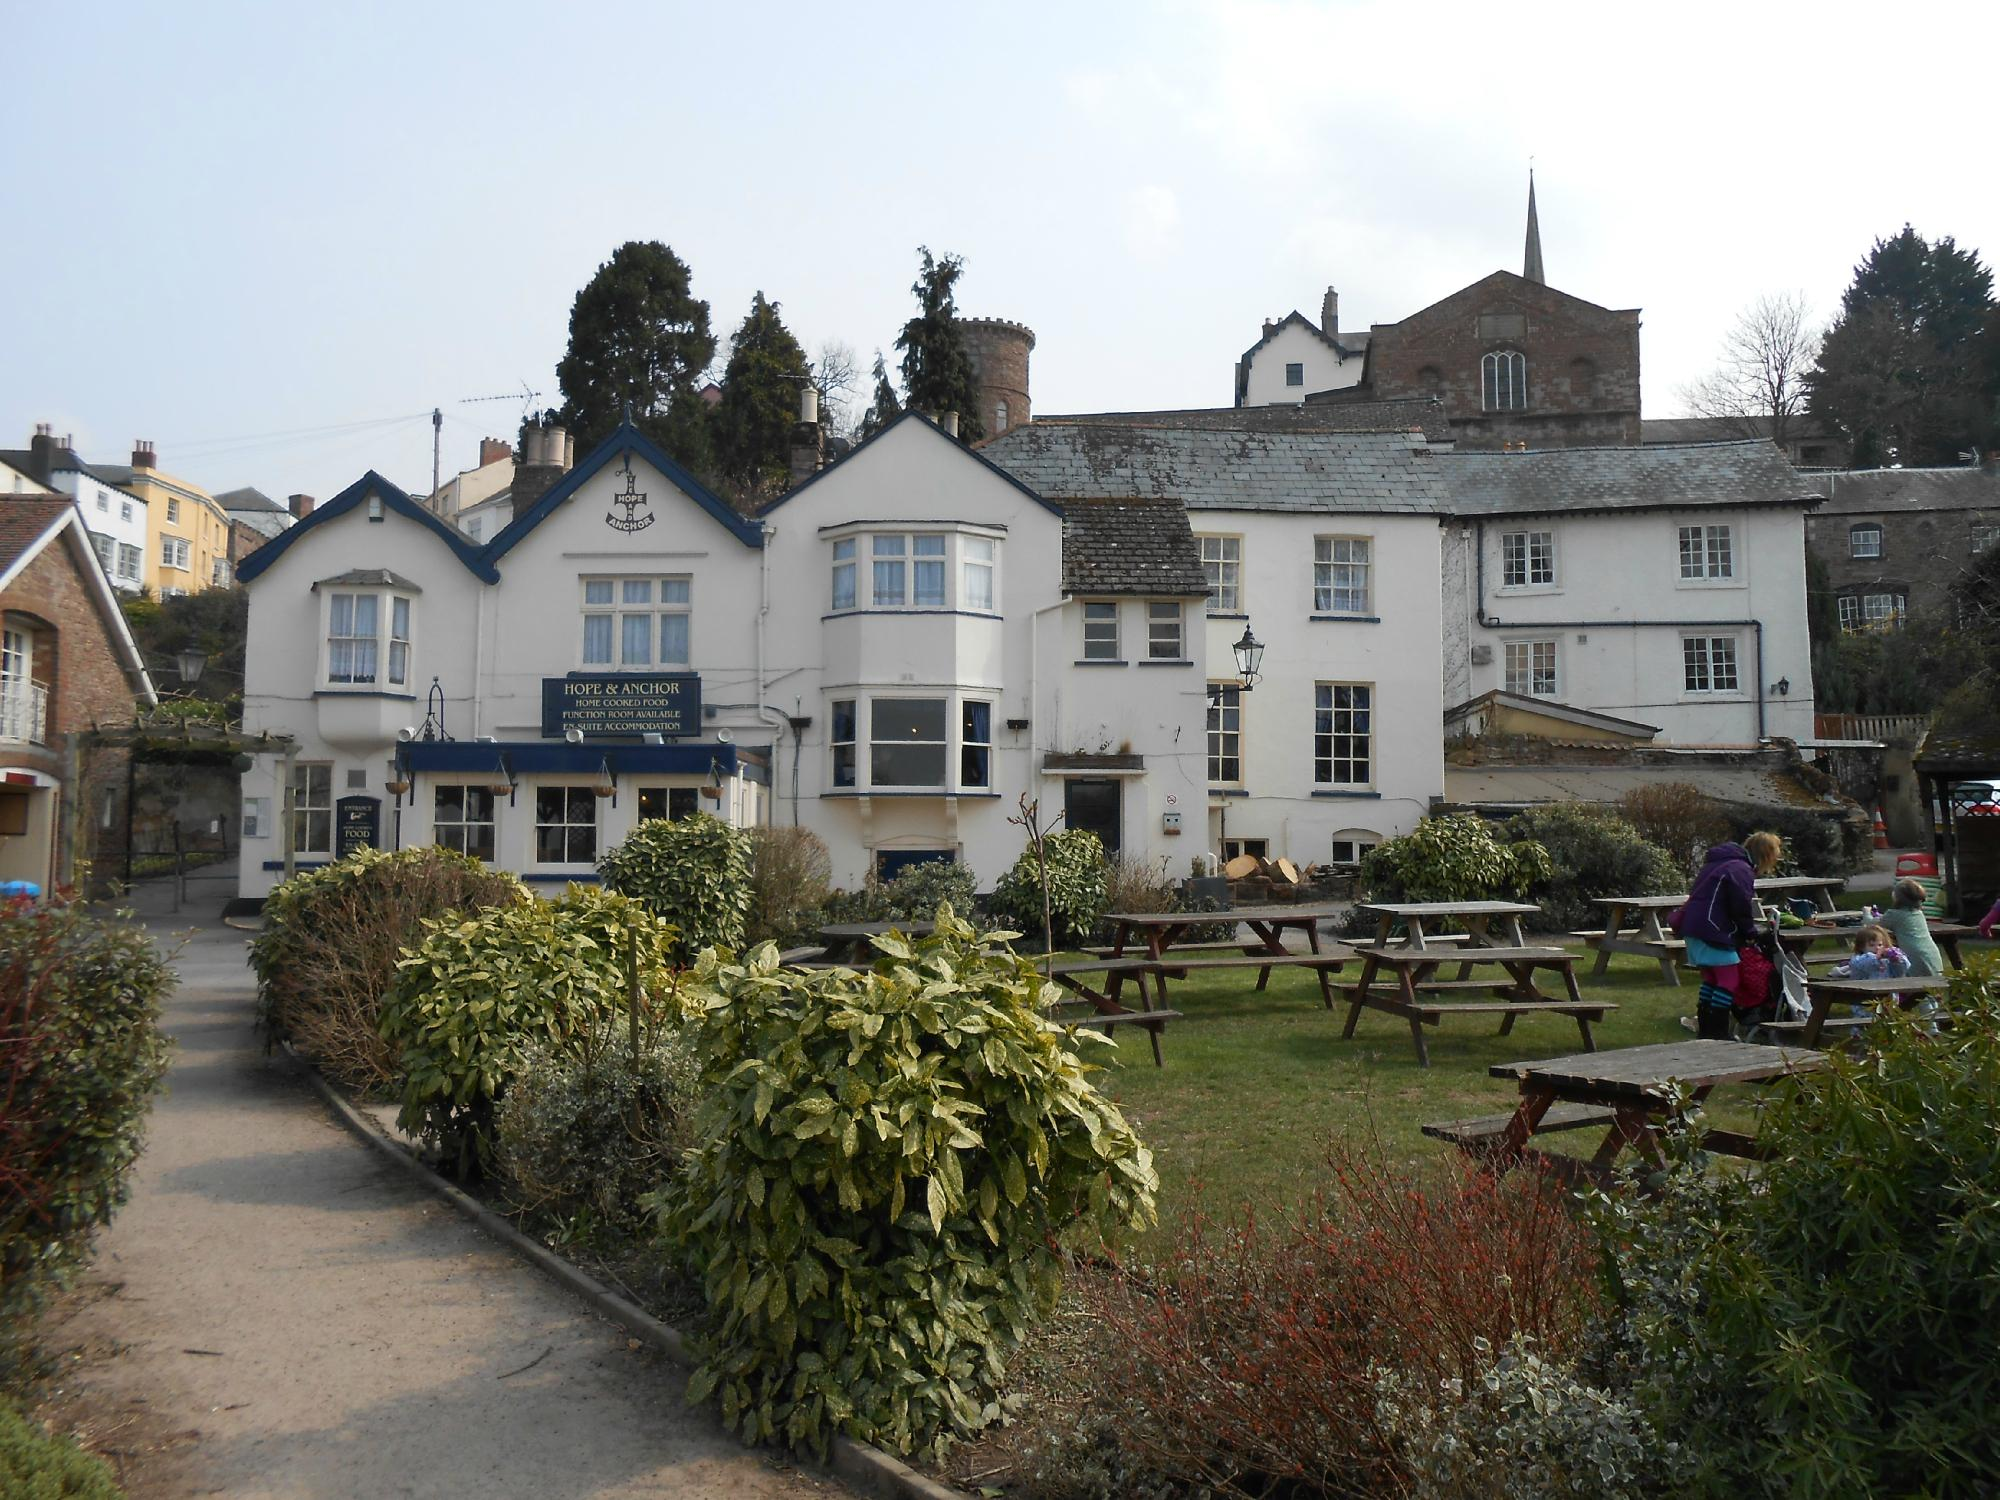 The Hope and Anchor Inn